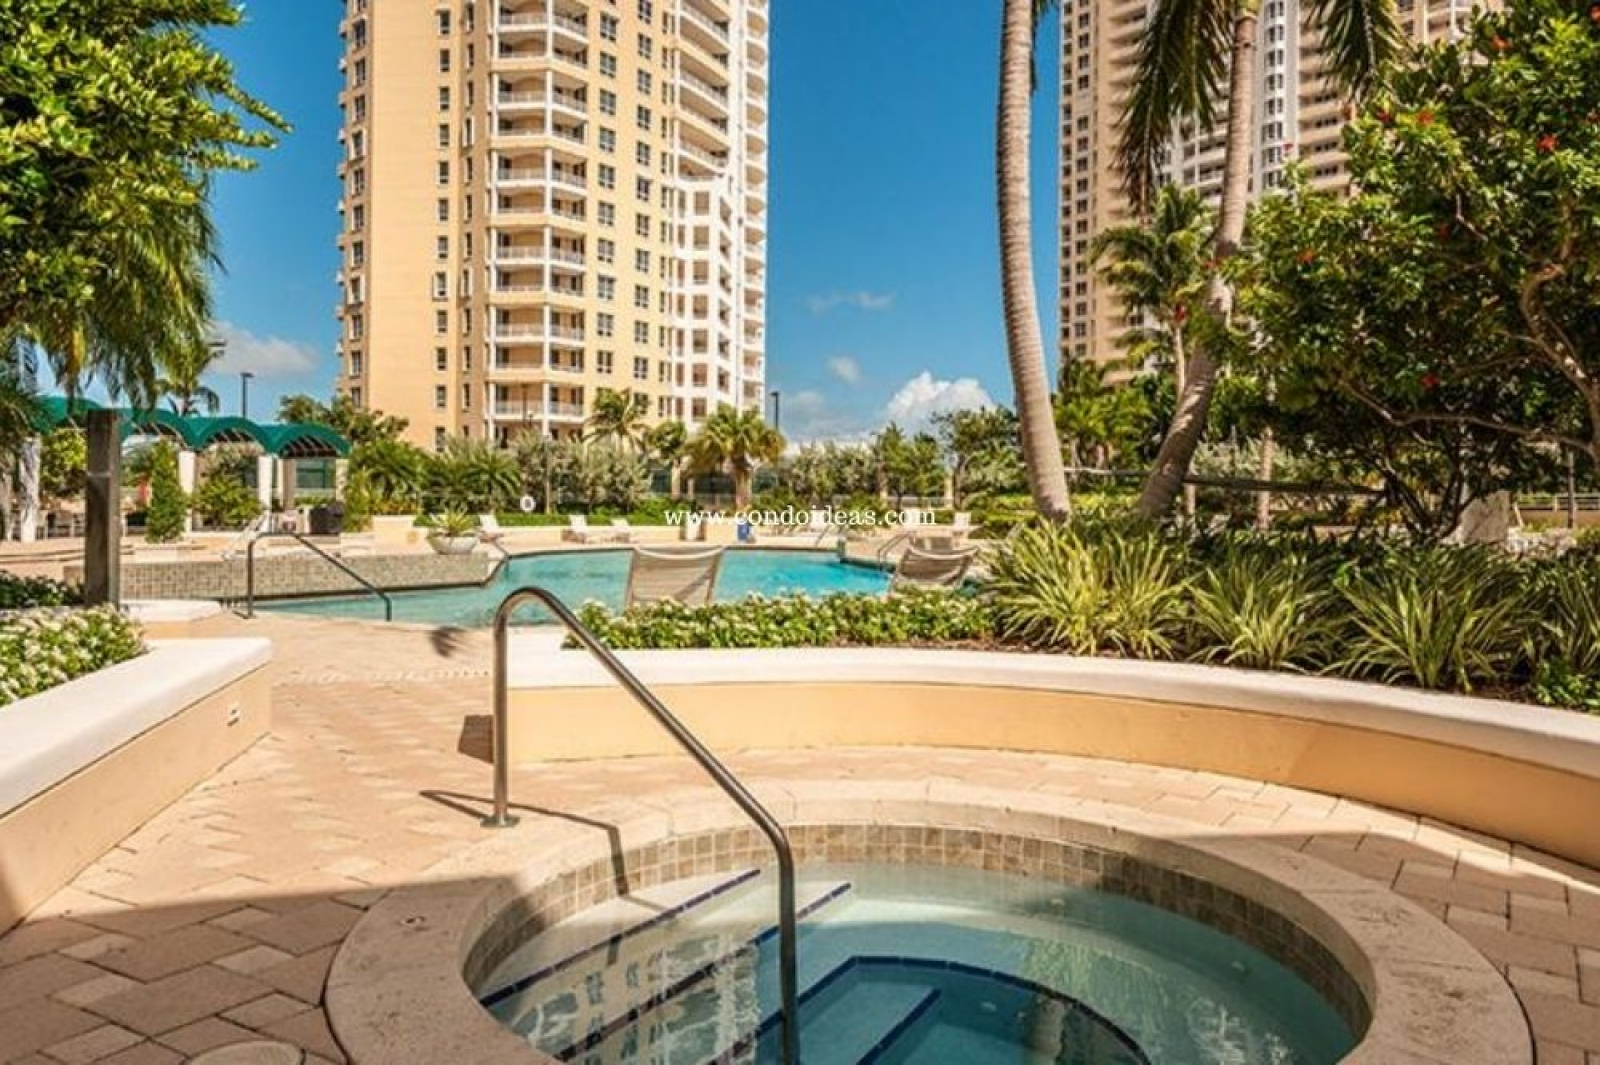 Tequesta Three condo